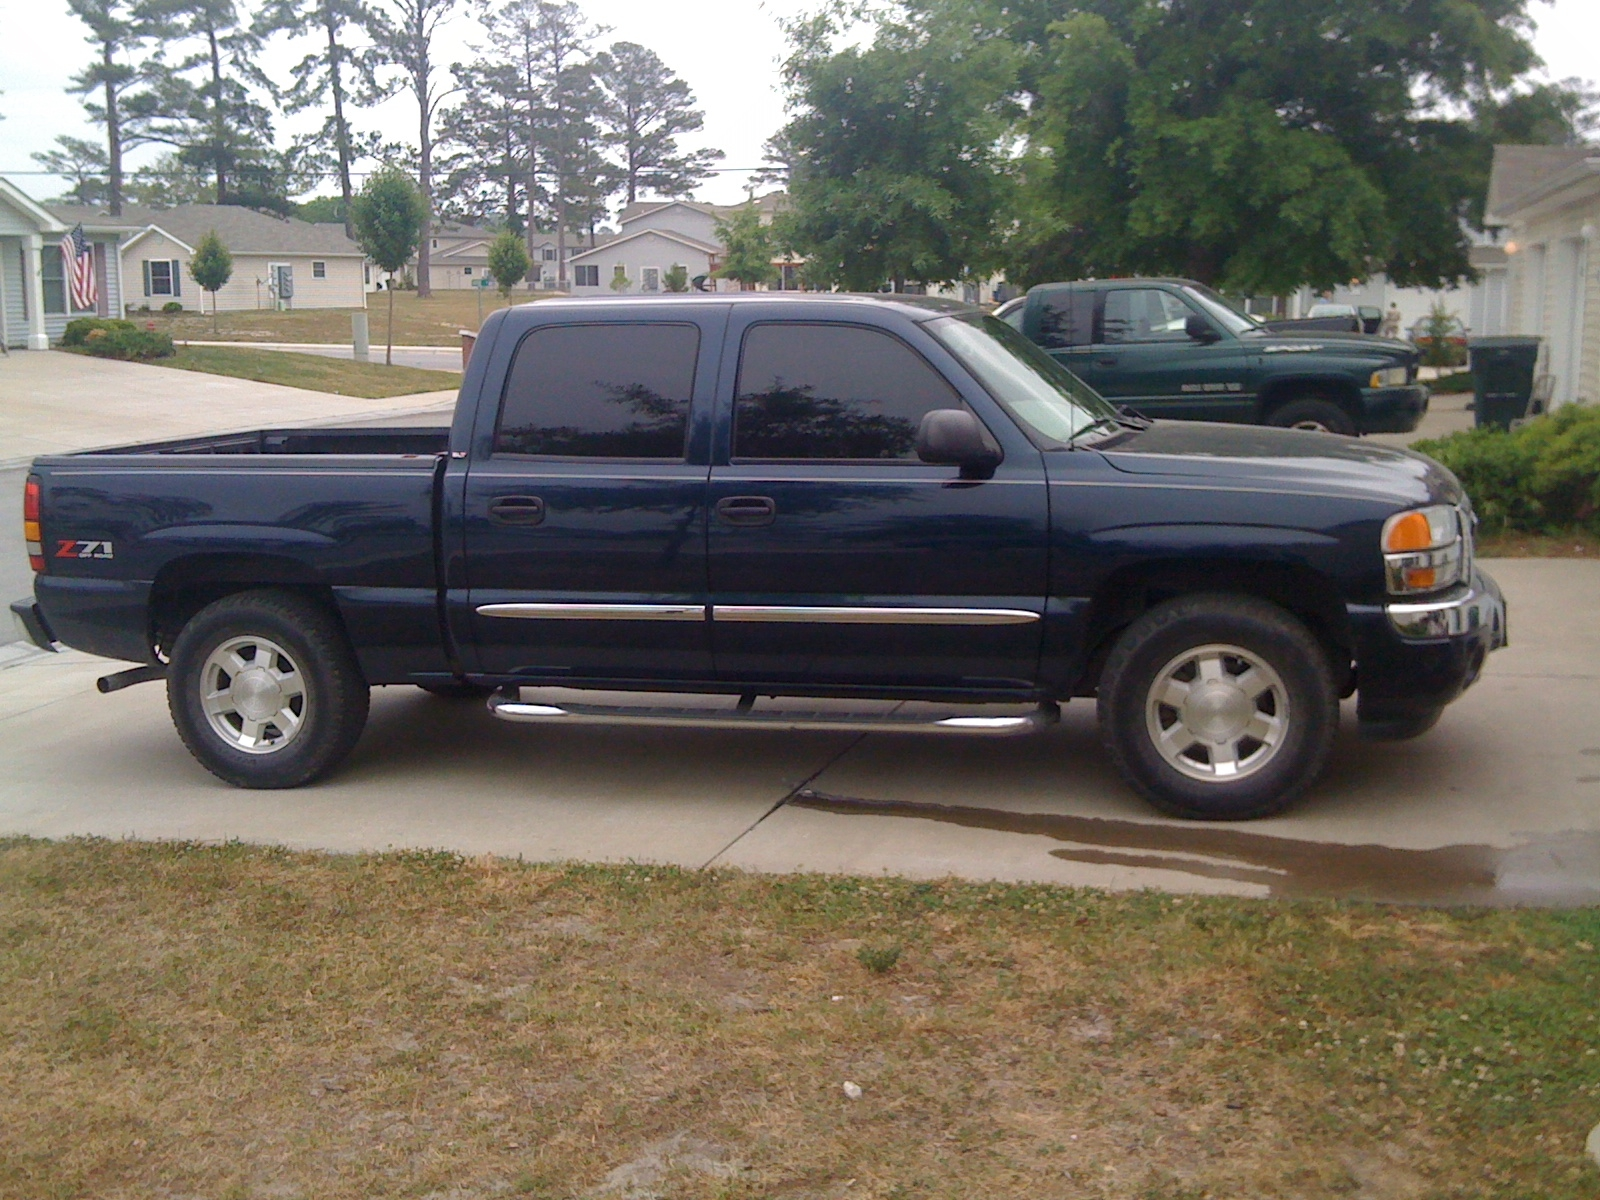 2006 gmc sierra 1500 information and photos zombiedrive. Black Bedroom Furniture Sets. Home Design Ideas